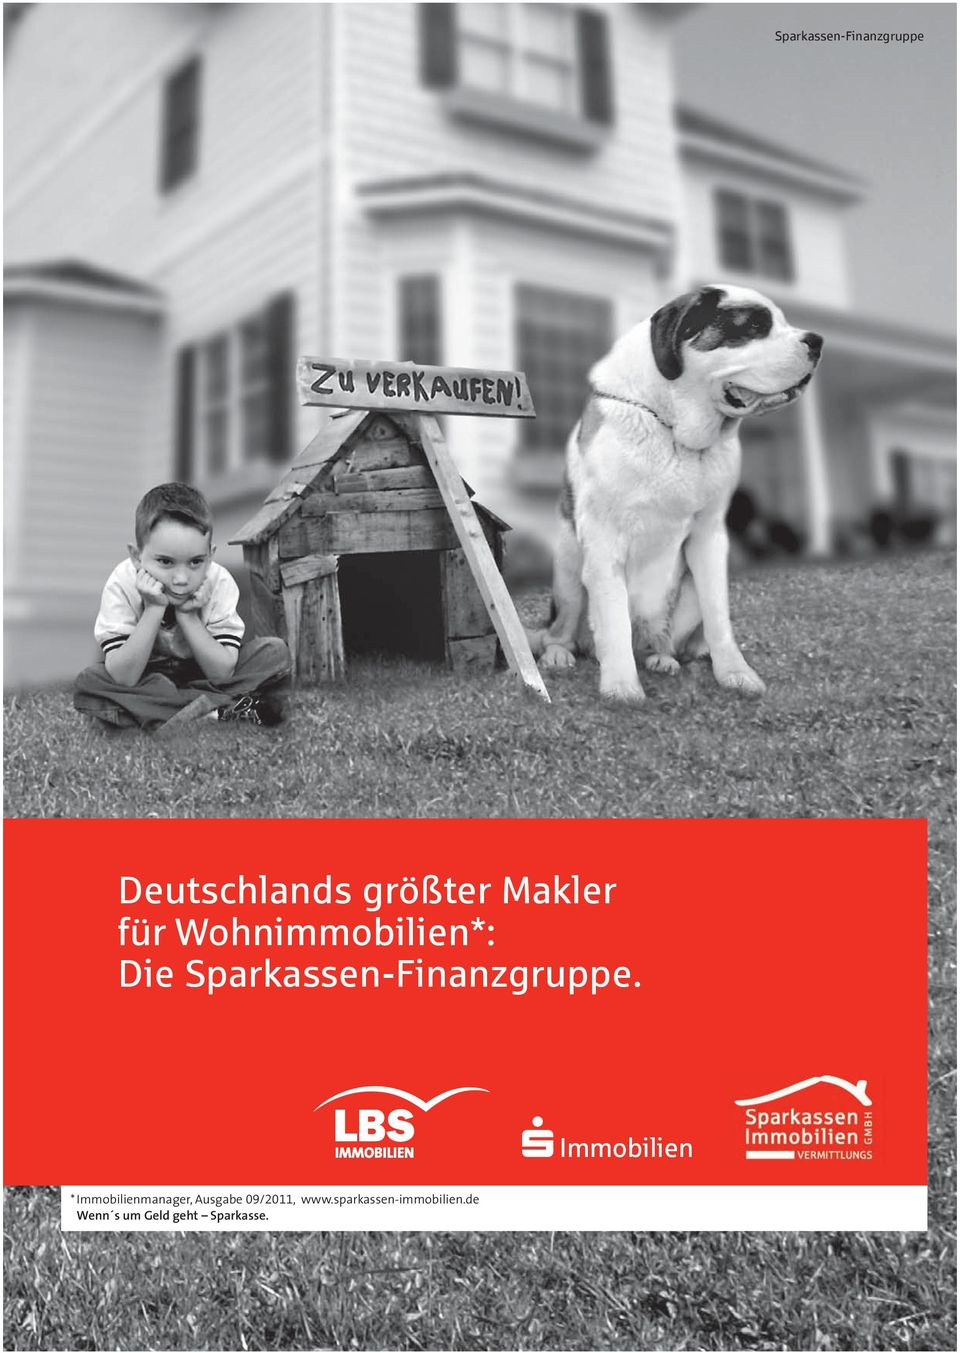 Immobilien * Immobilienmanager, Ausgabe 09/2011, www.